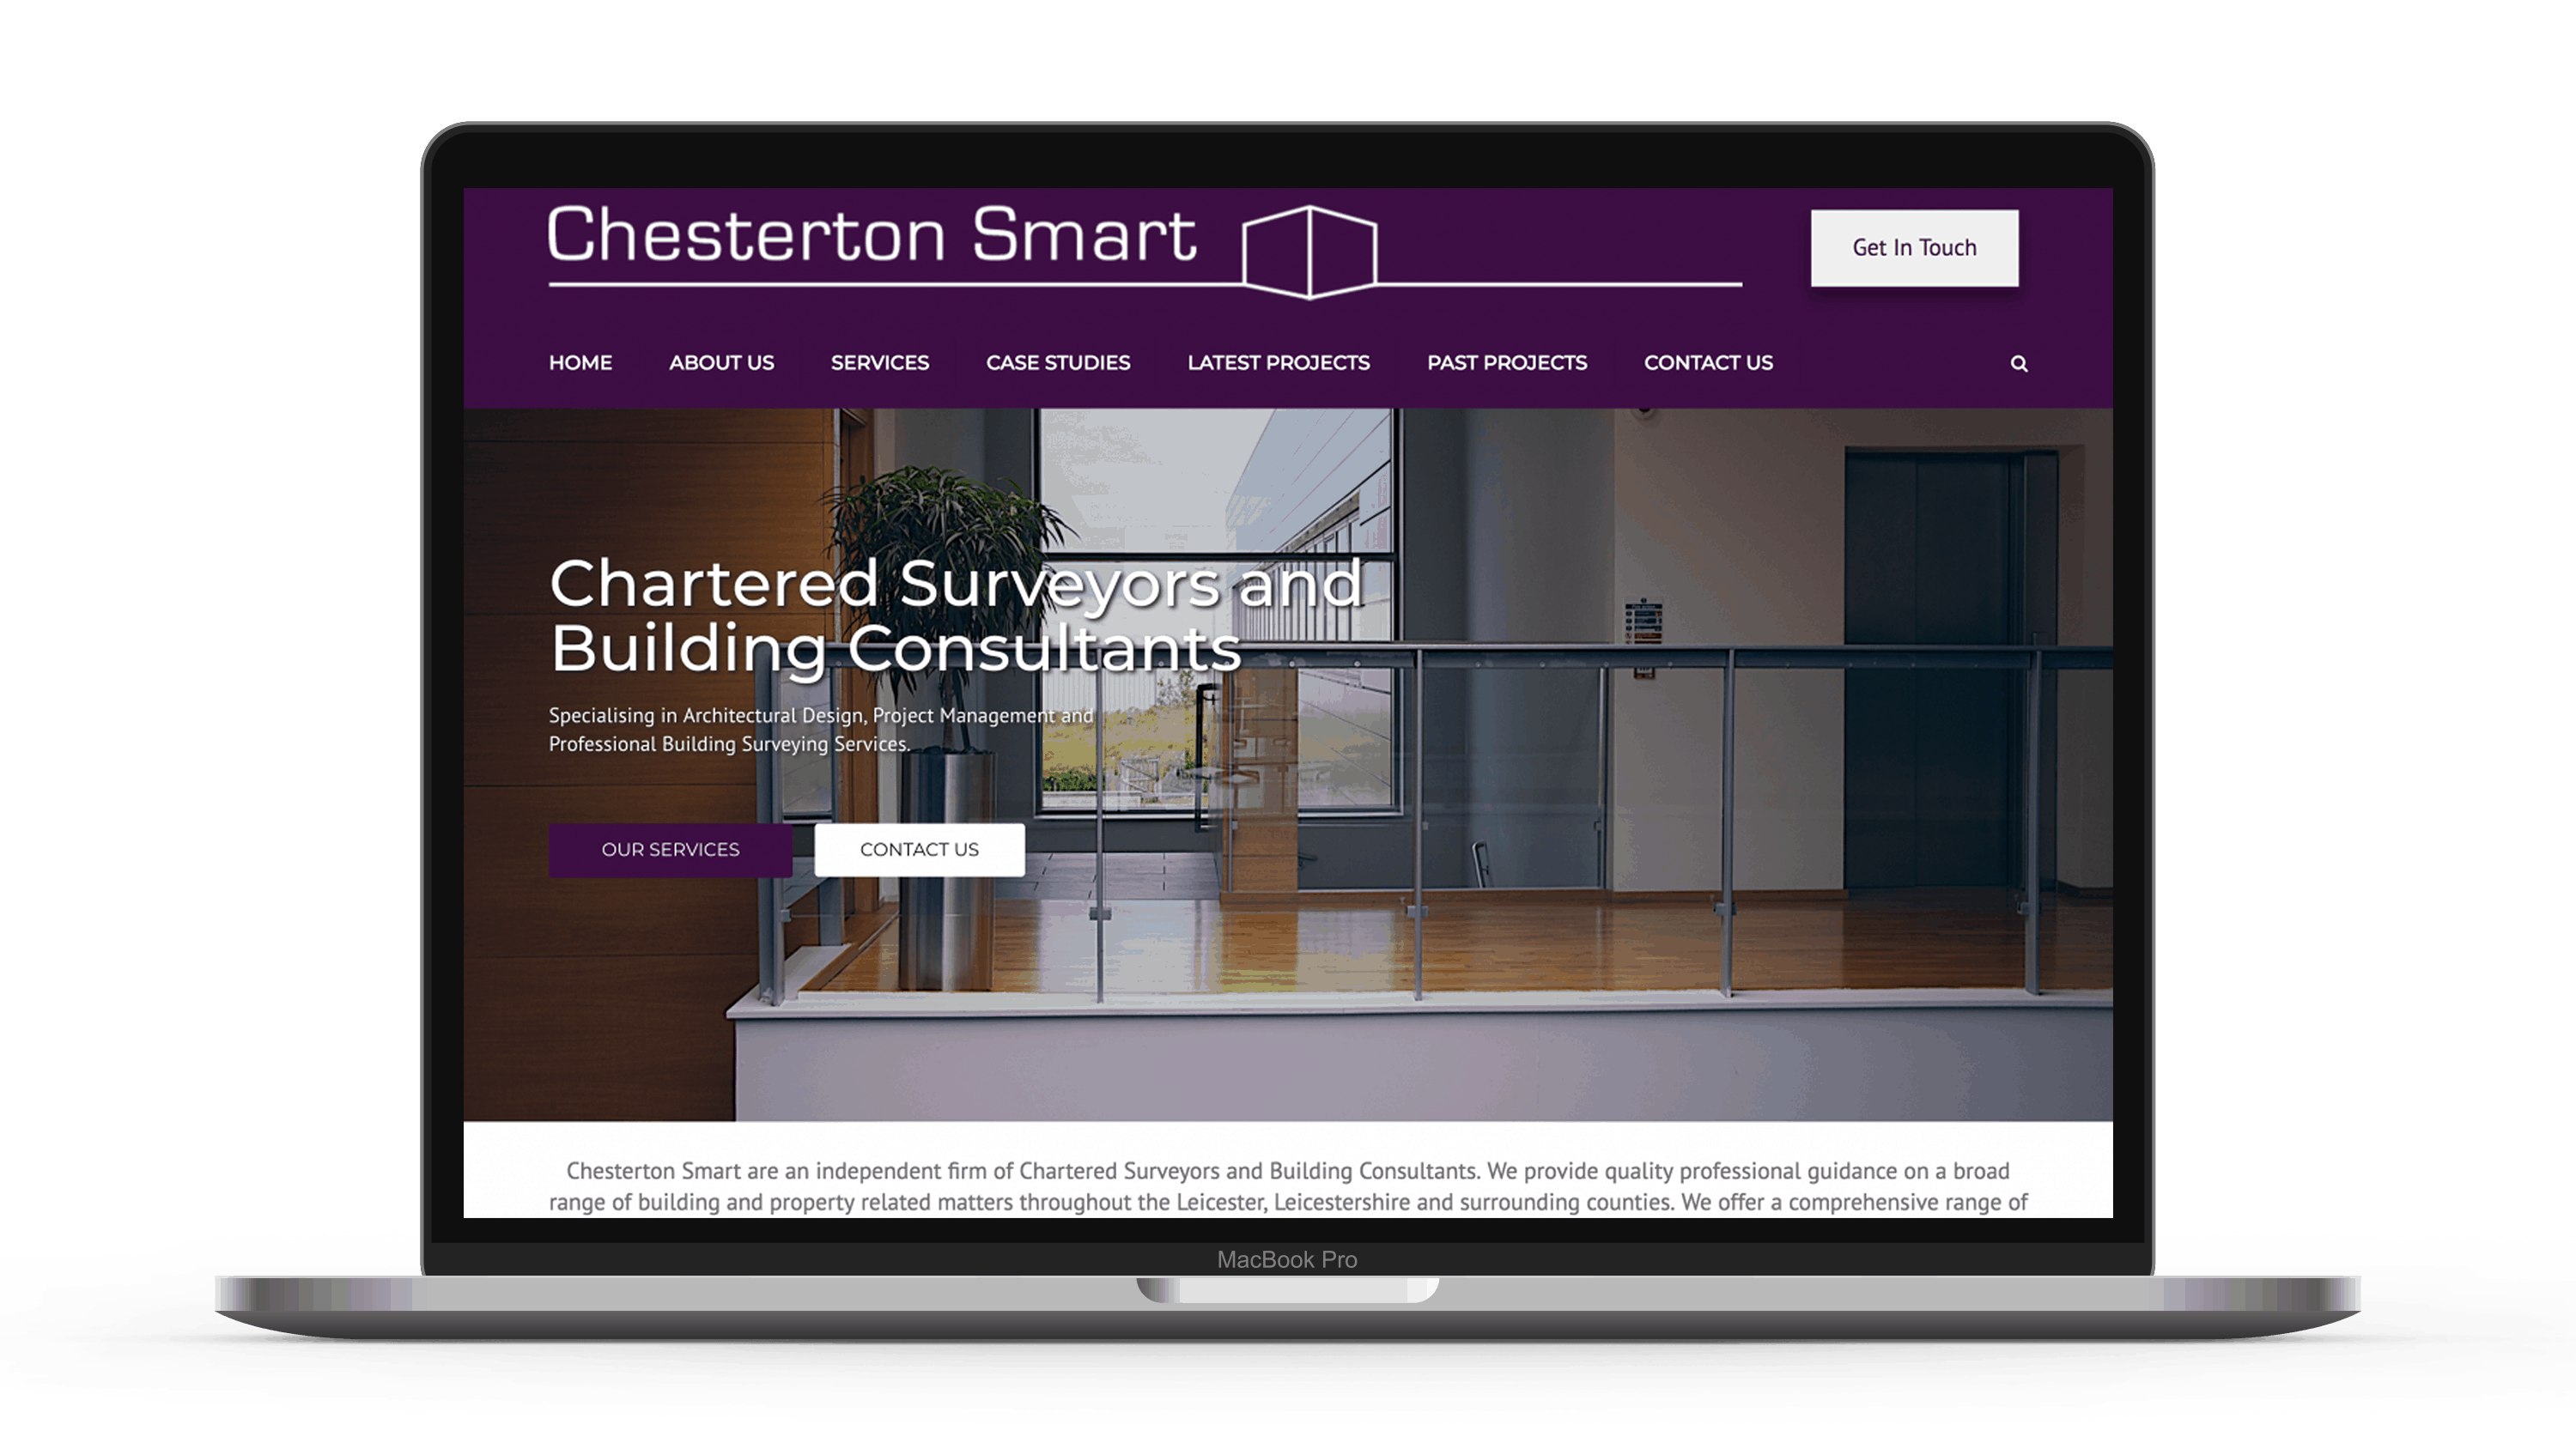 chesterton smart web design on macbook